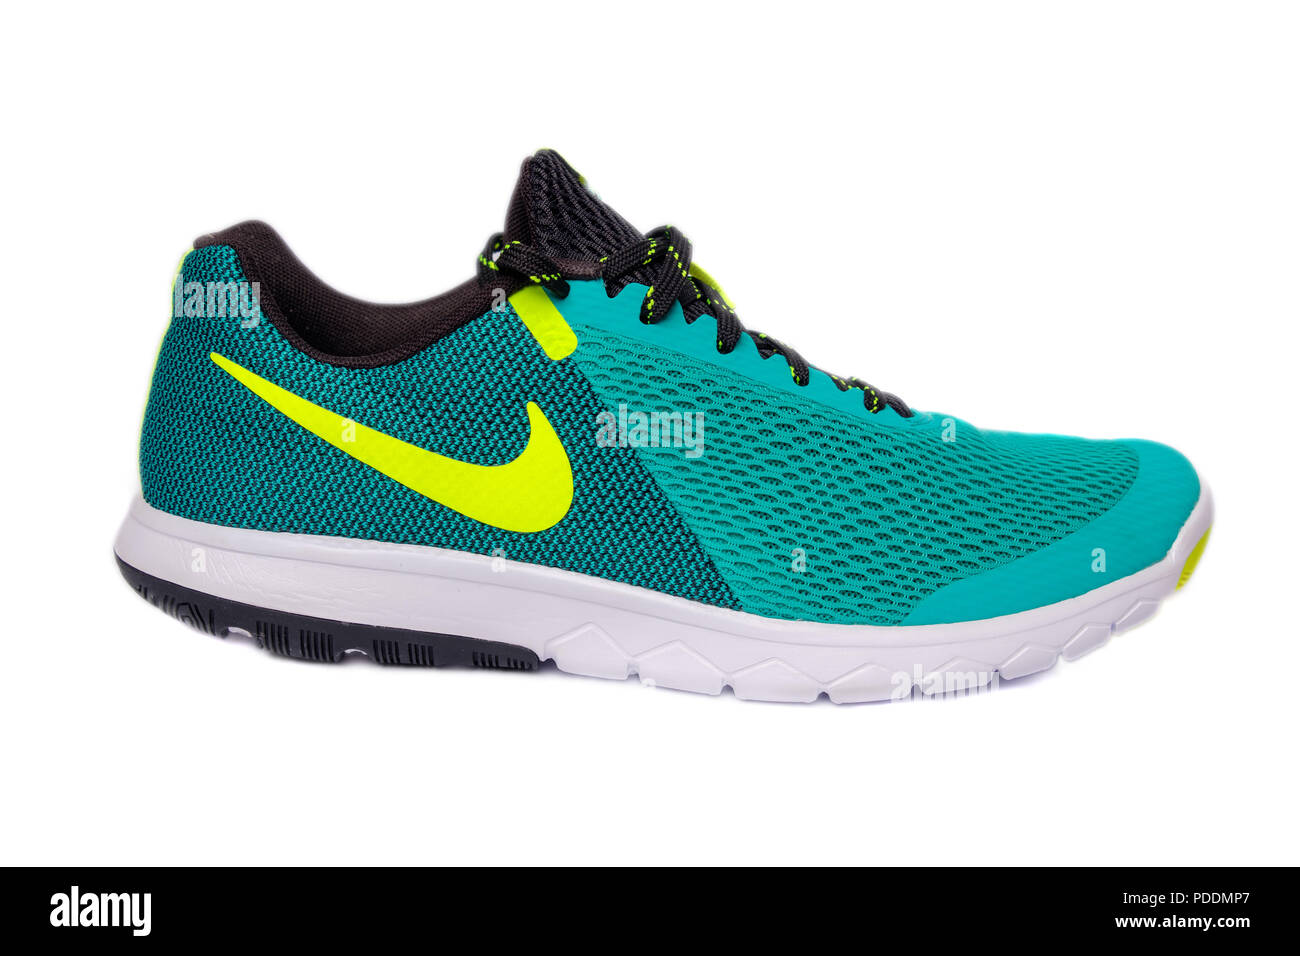 new york 7197c 18a6b Green Nike Flex Experience RN 5 running shoe cut out isolated on white  background